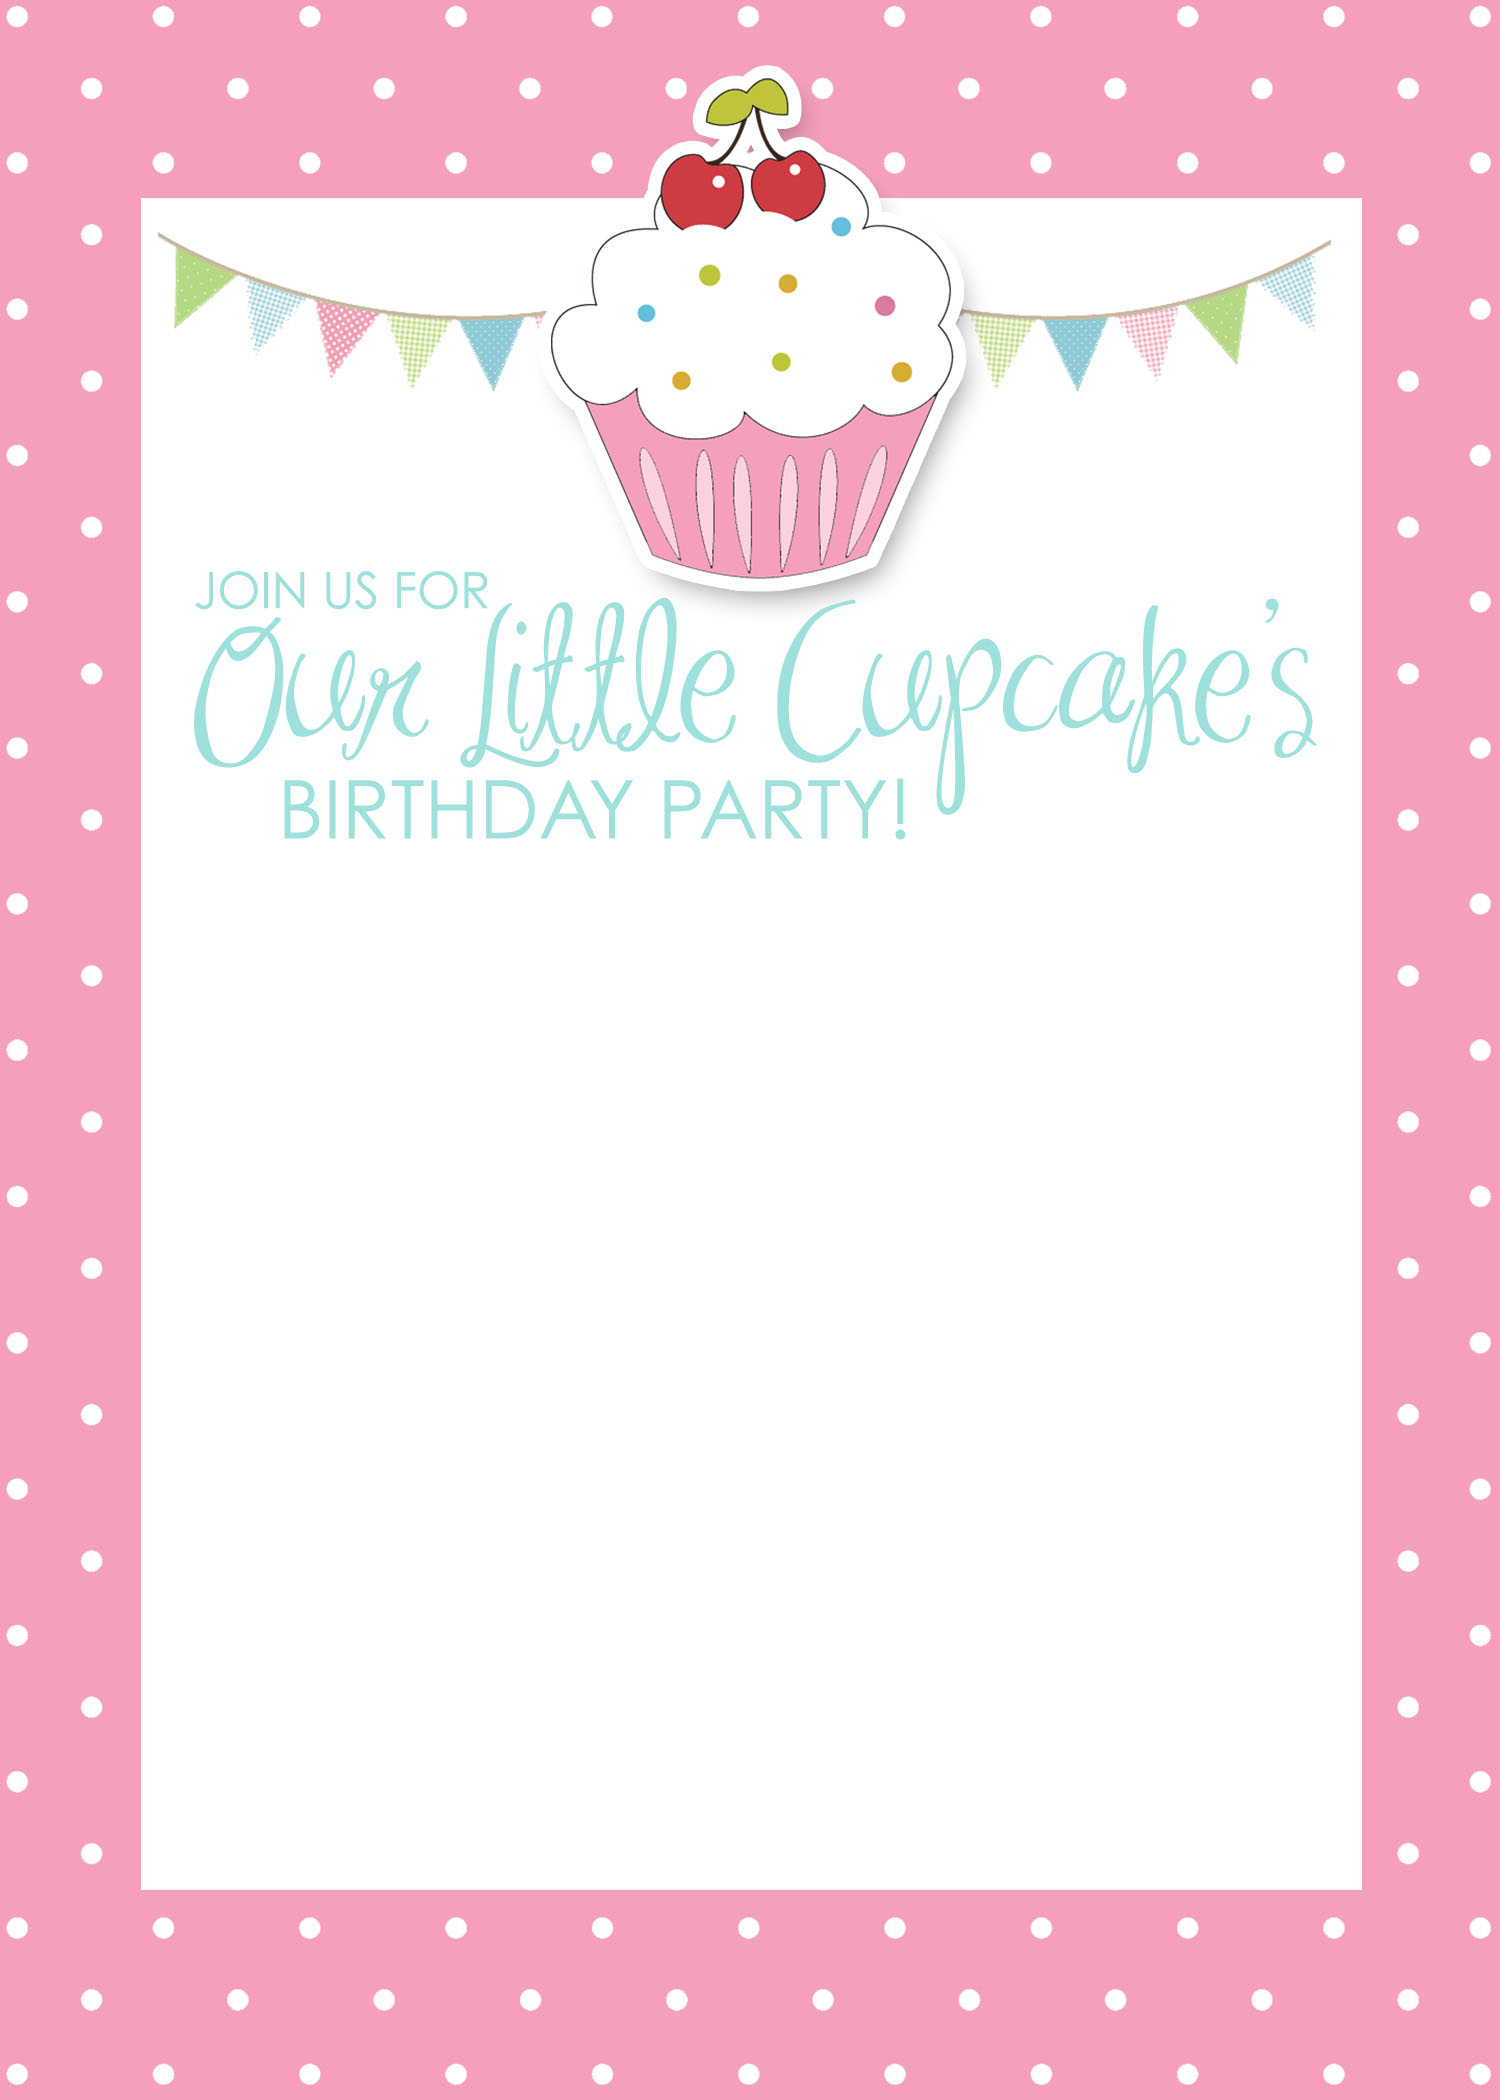 5 Images of Cupcake Birthday Party Invitations Printable Free